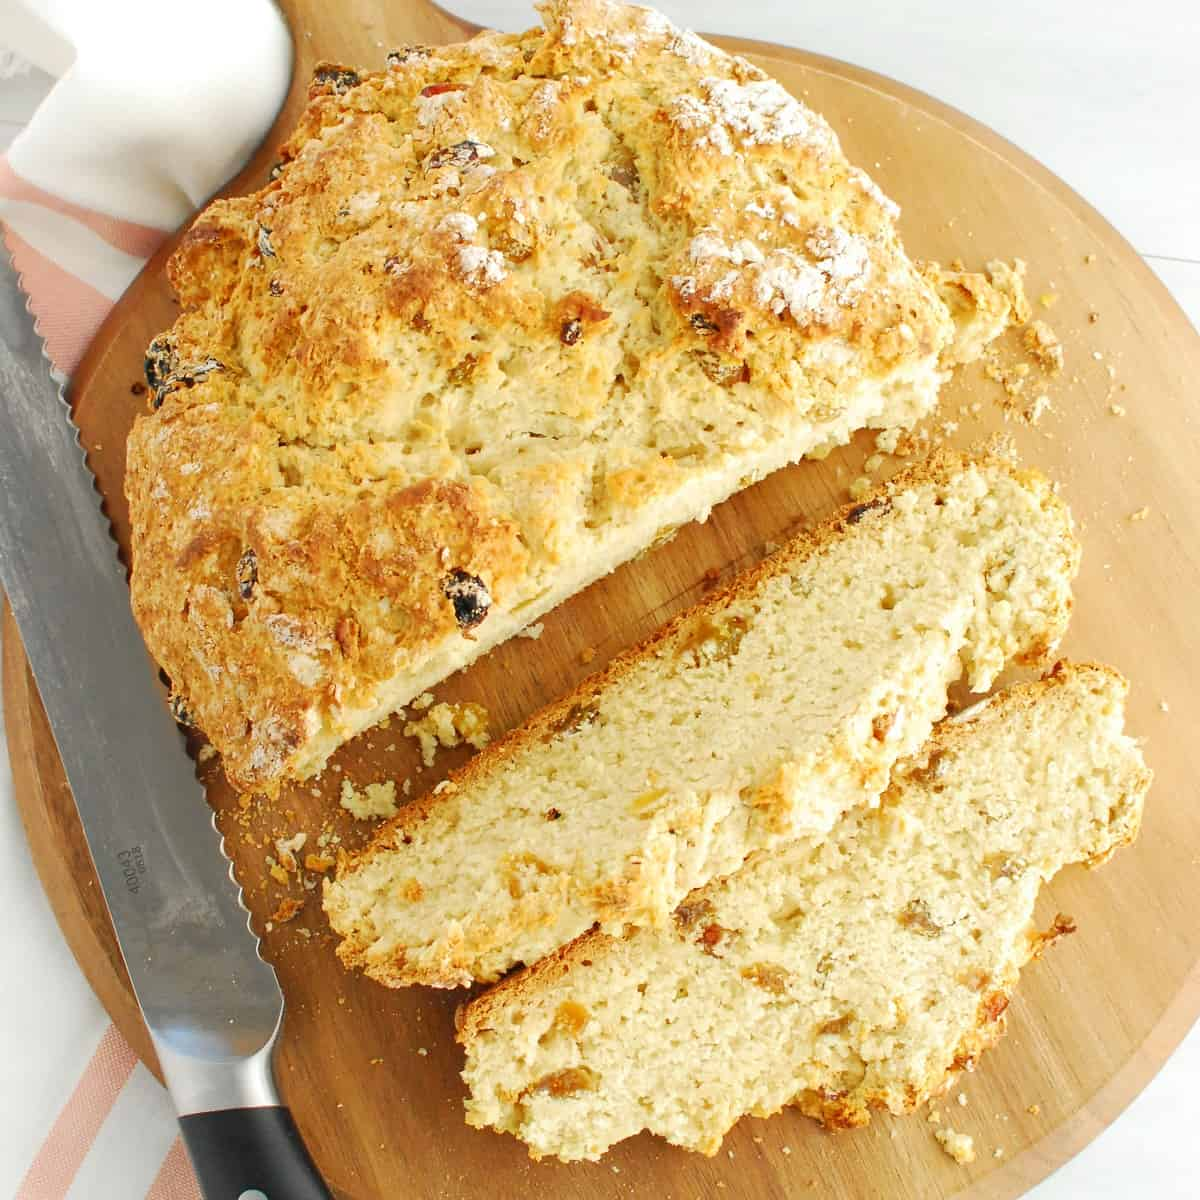 A loaf of sweetened vegan Irish soda bread with raisins with two slices cut from it.